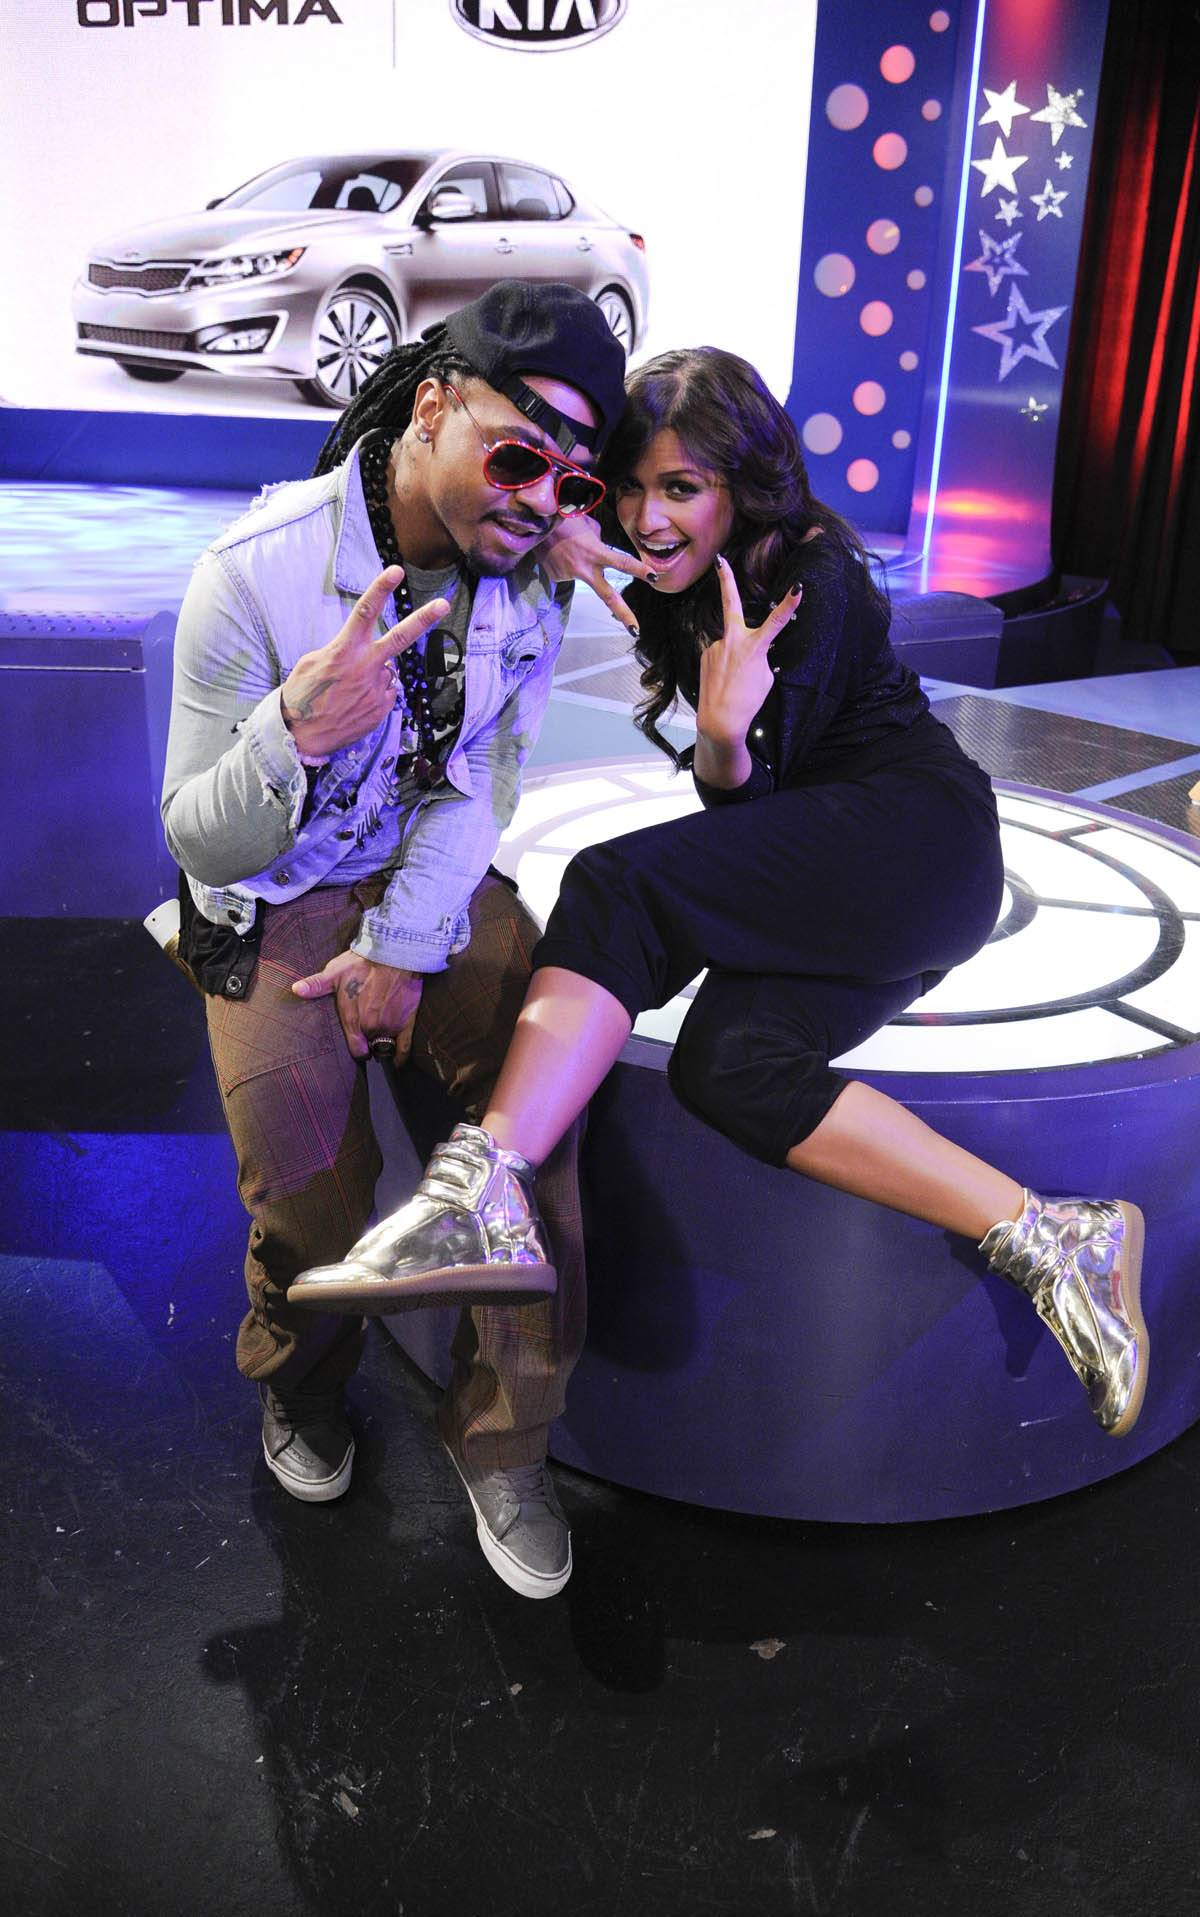 Love From Me to You - Rocsi Diaz with hairstylist Q at 106 & Park, January 27, 2012. (Photo: John Ricard / BET)